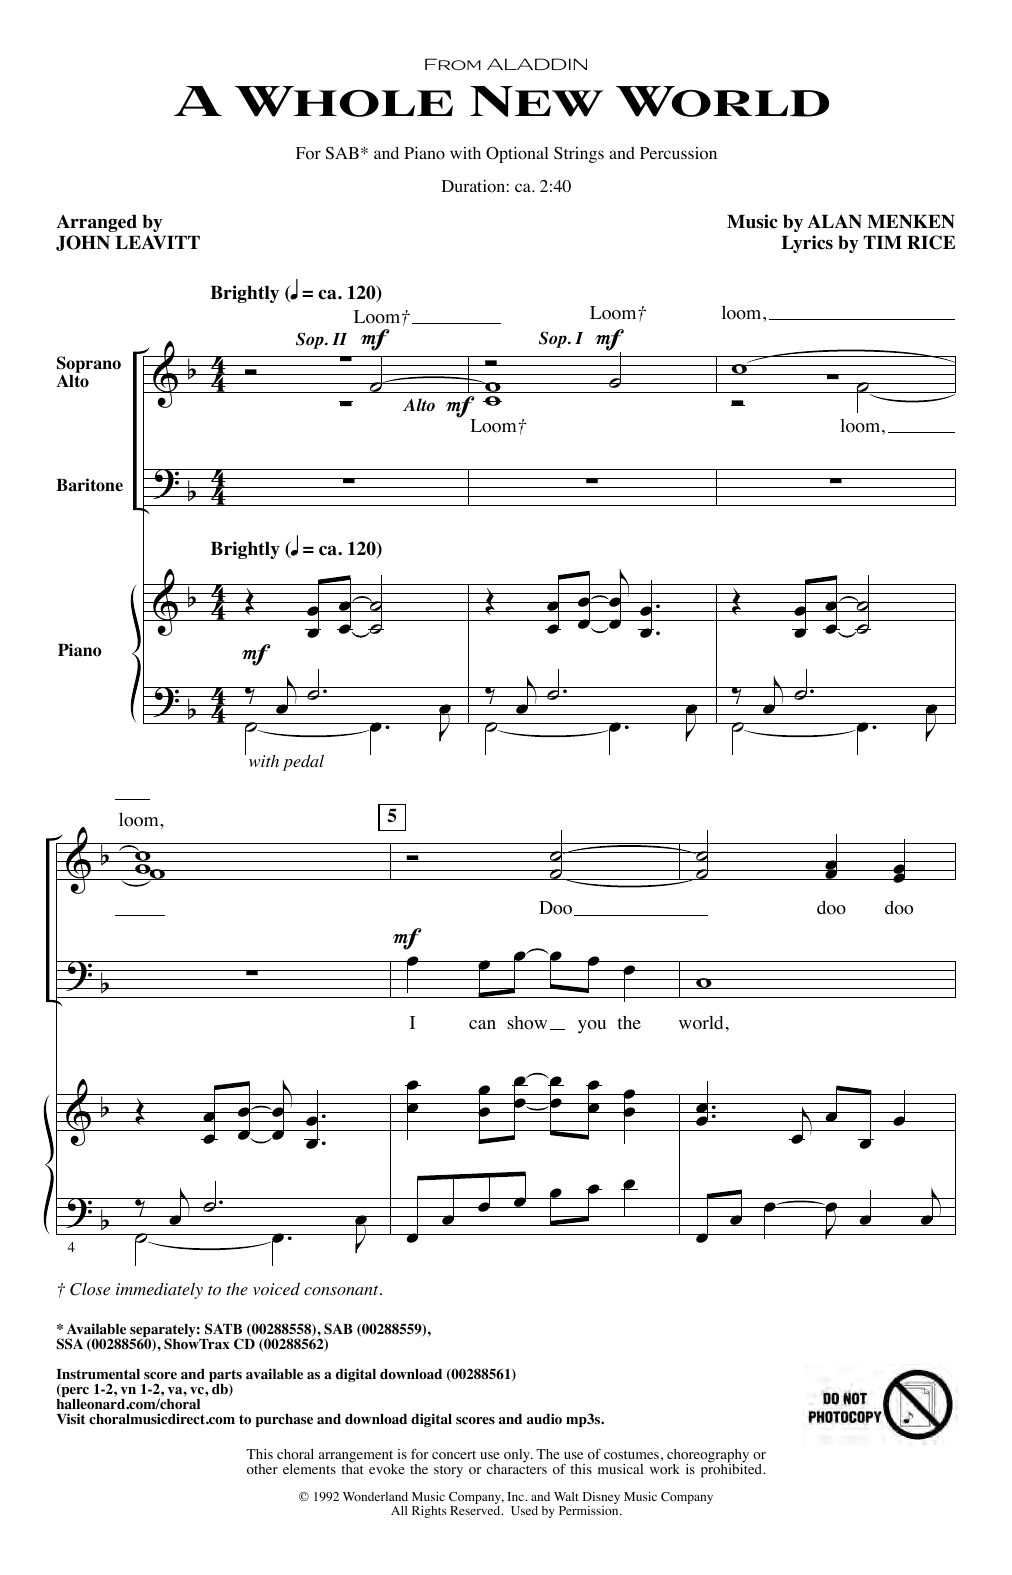 Download Alan Menken 'A Whole New World (from Aladdin) (arr. John Leavitt)' Digital Sheet Music Notes & Chords and start playing in minutes